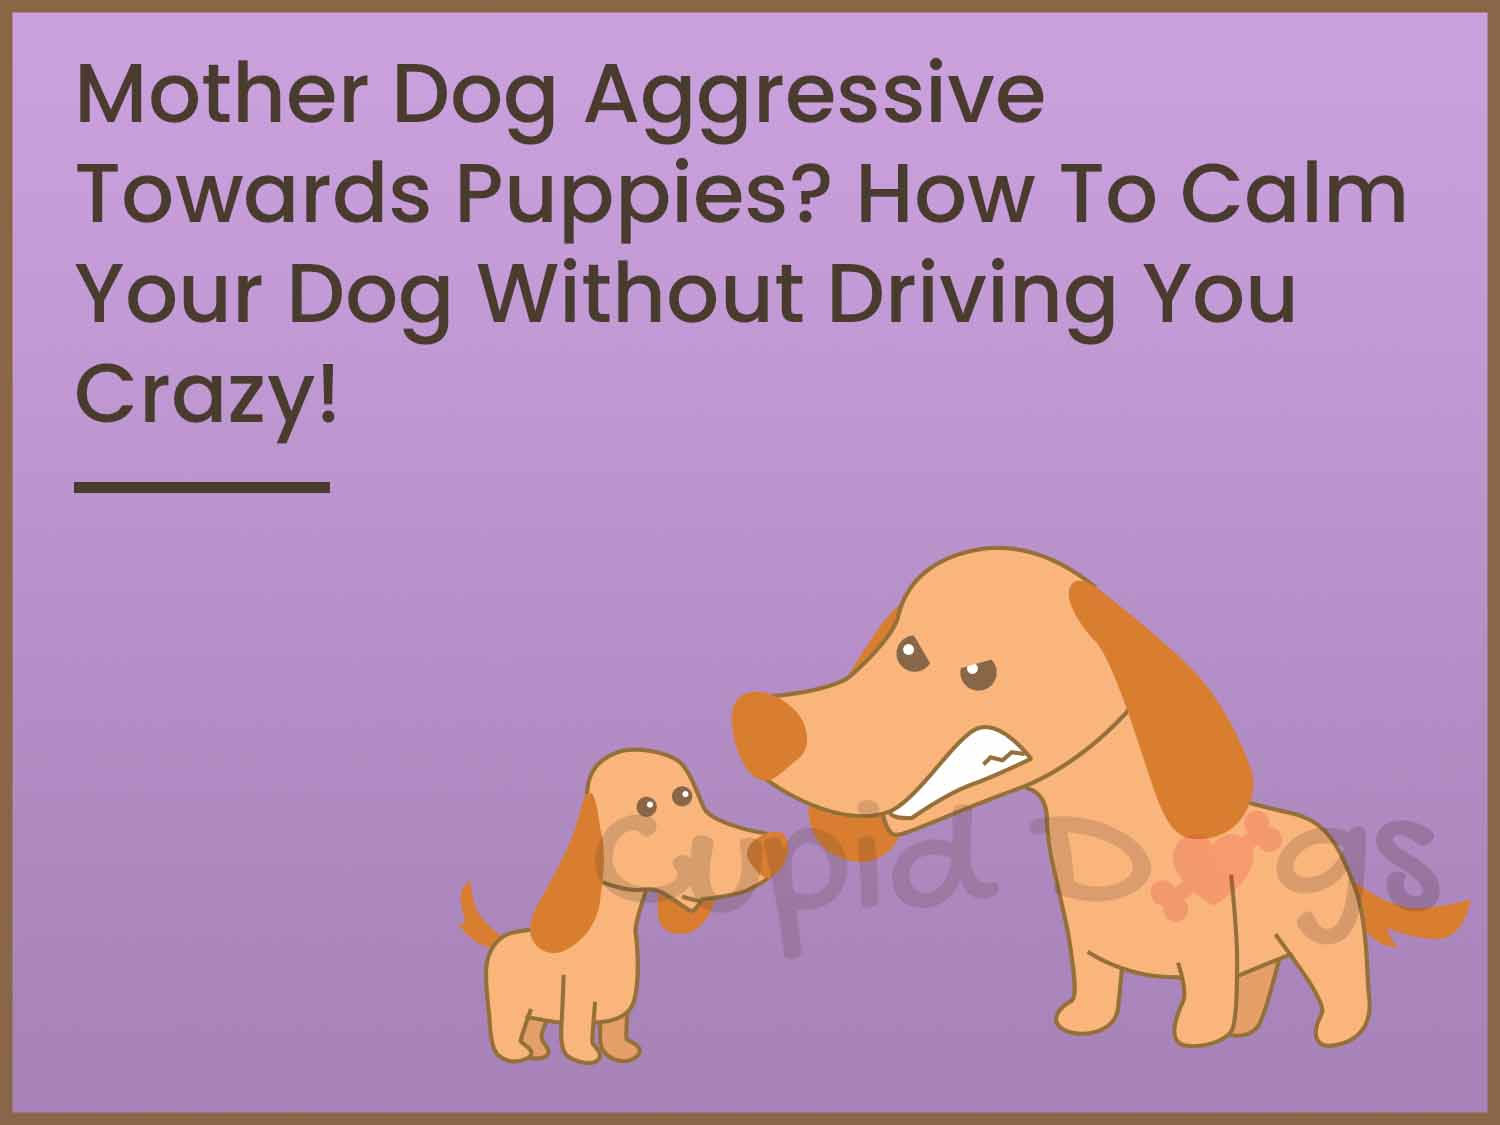 Mother Dog Aggressive Towards Puppies?